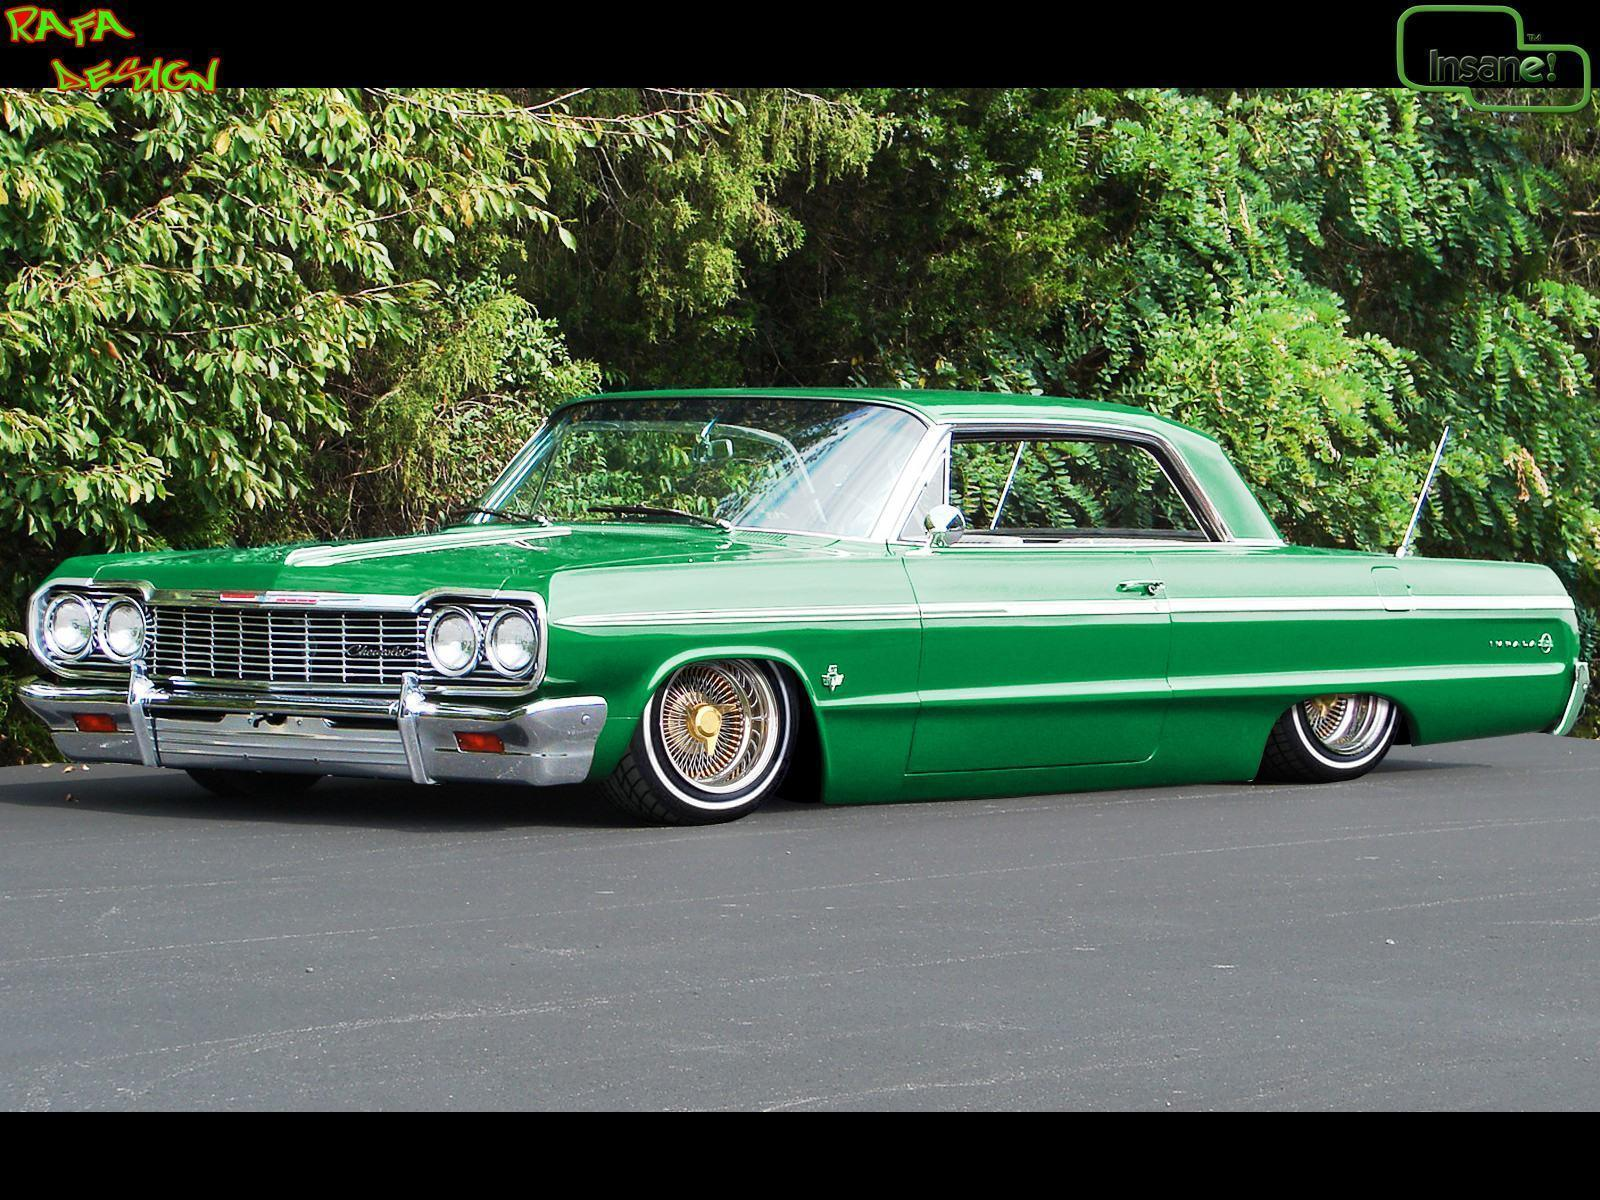 1600x1200 - Lowrider Wallpapers 4